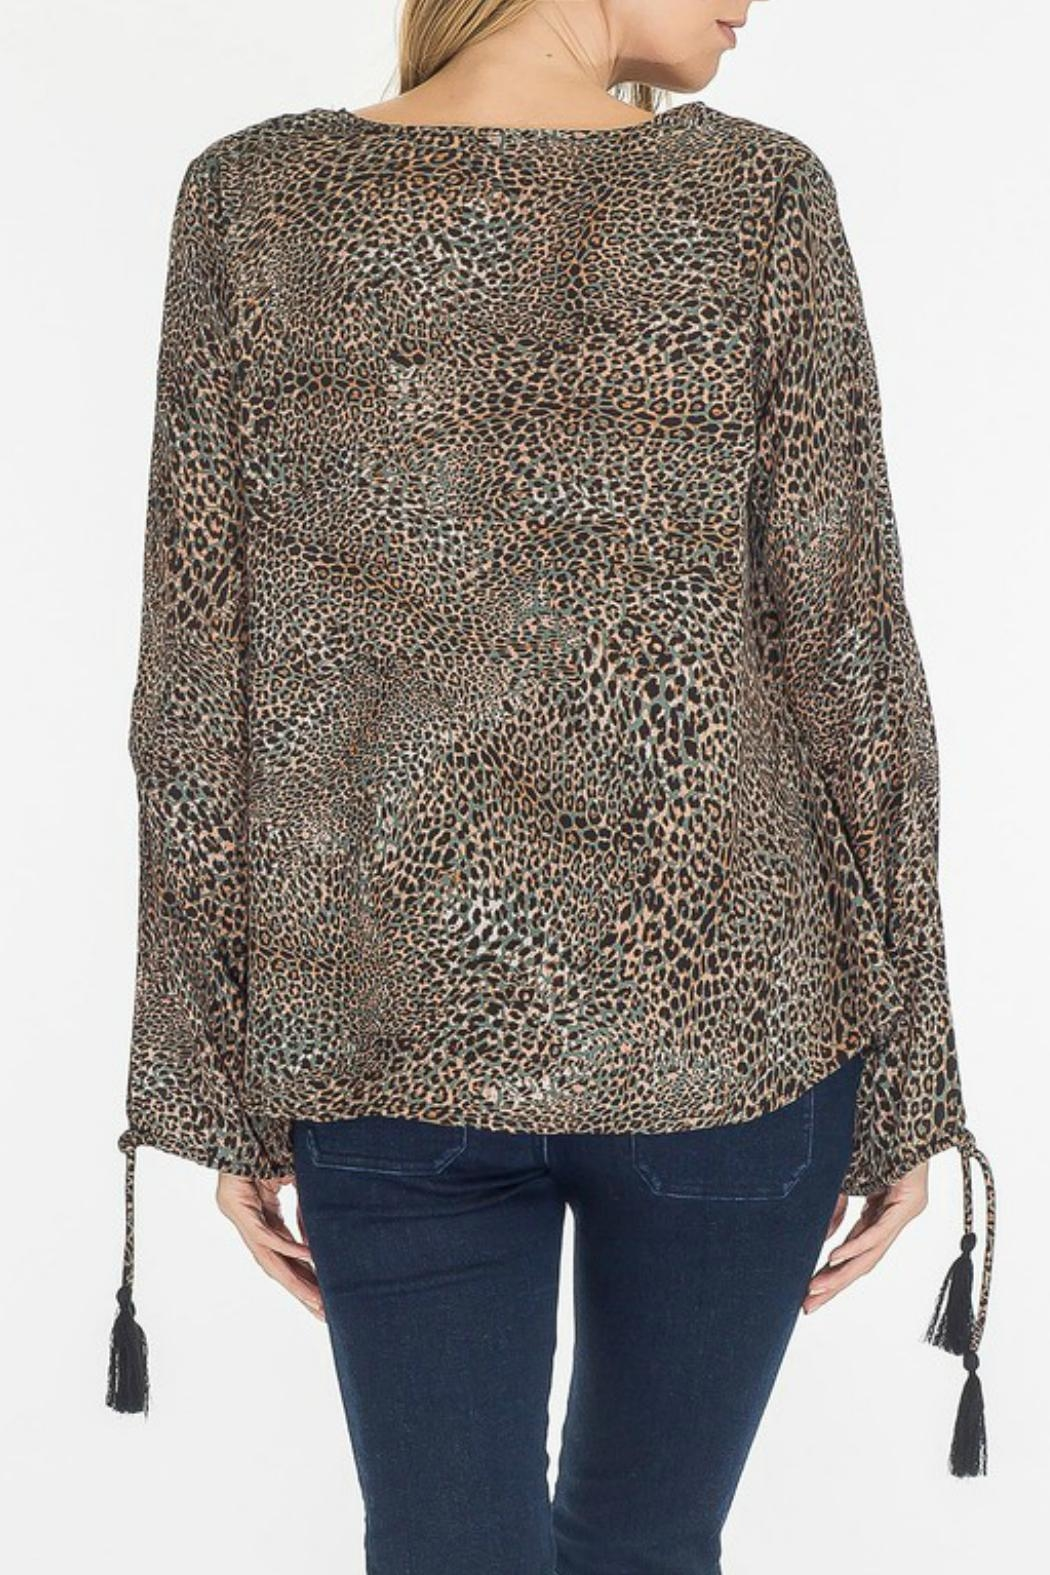 Olivaceous Leopard Keyhole Top - Side Cropped Image